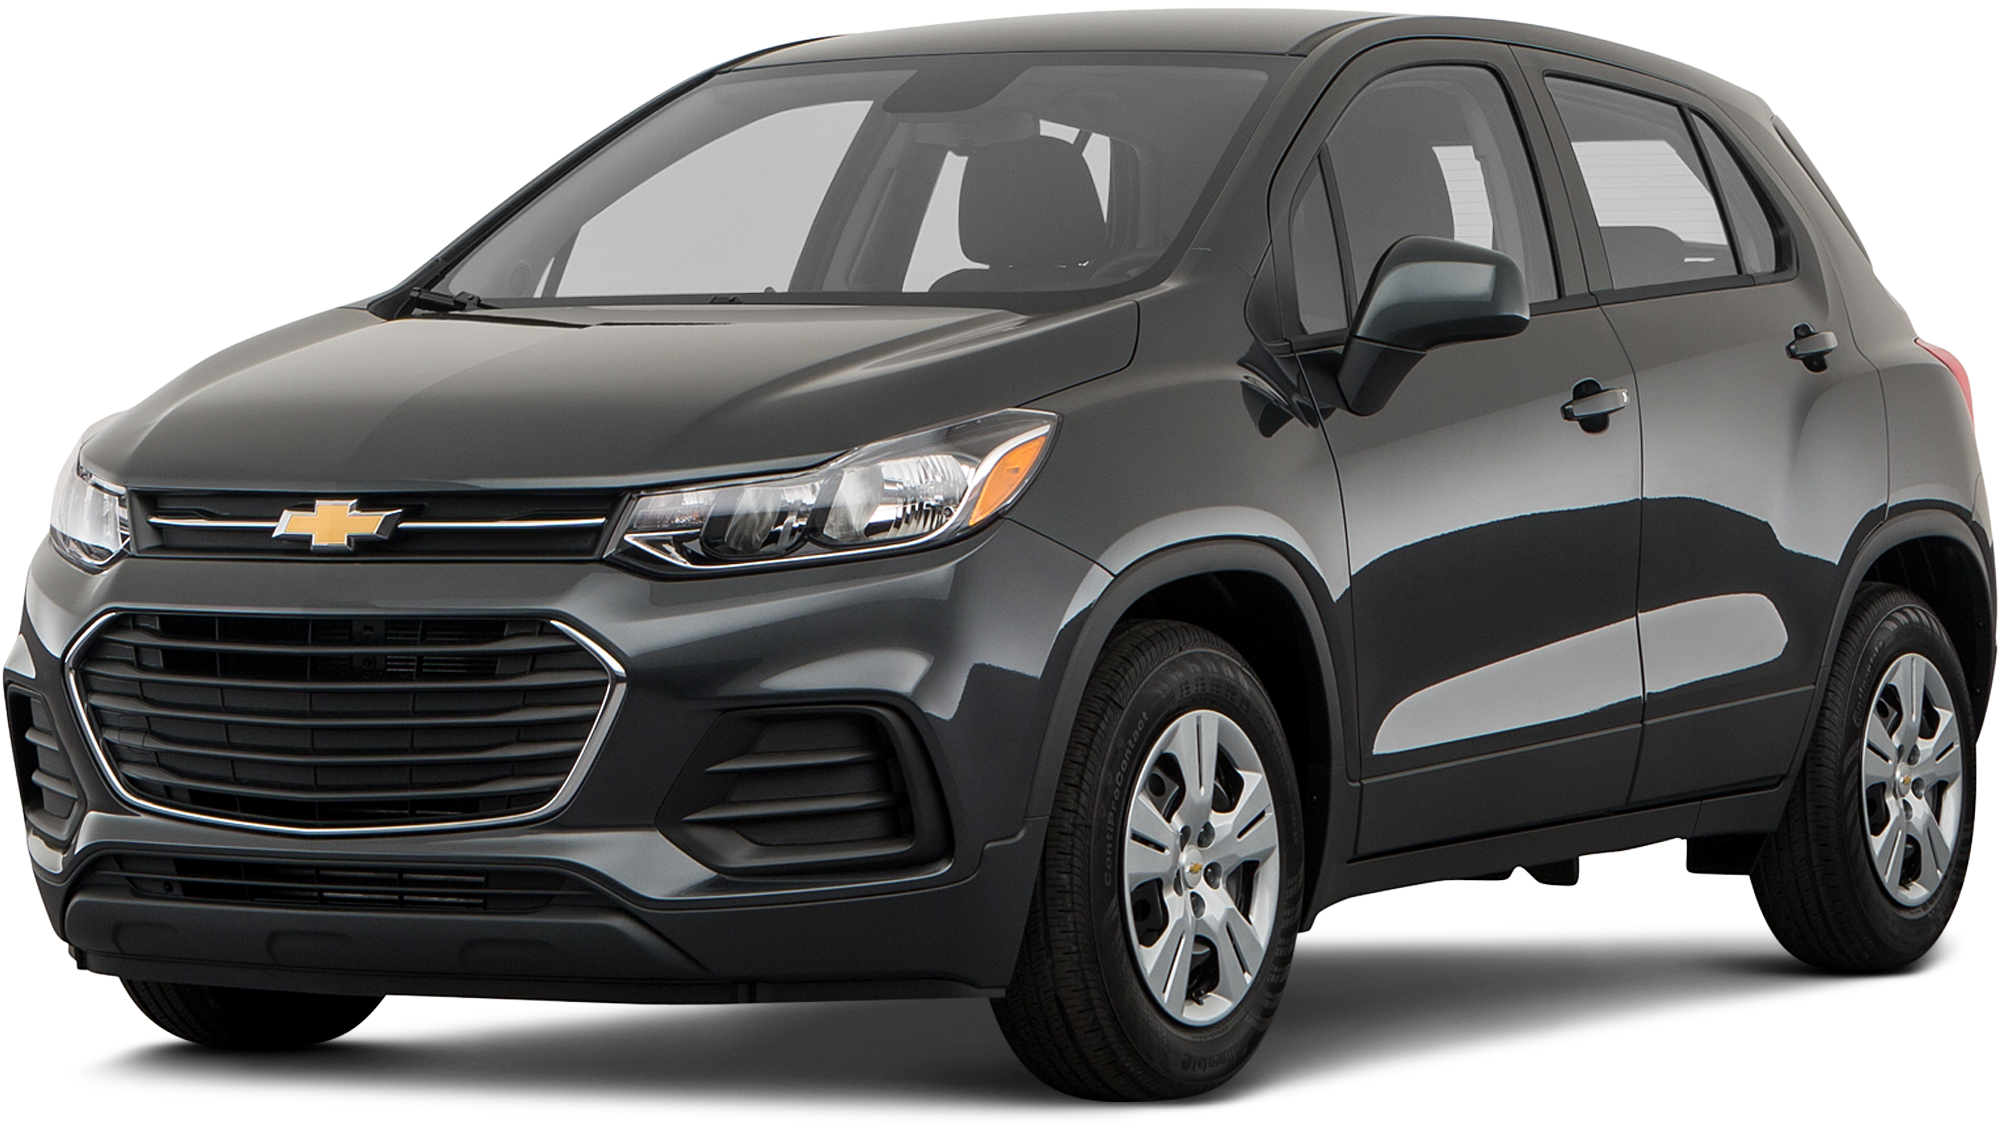 2021 Chevrolet Trax Incentives, Specials & Offers in ...